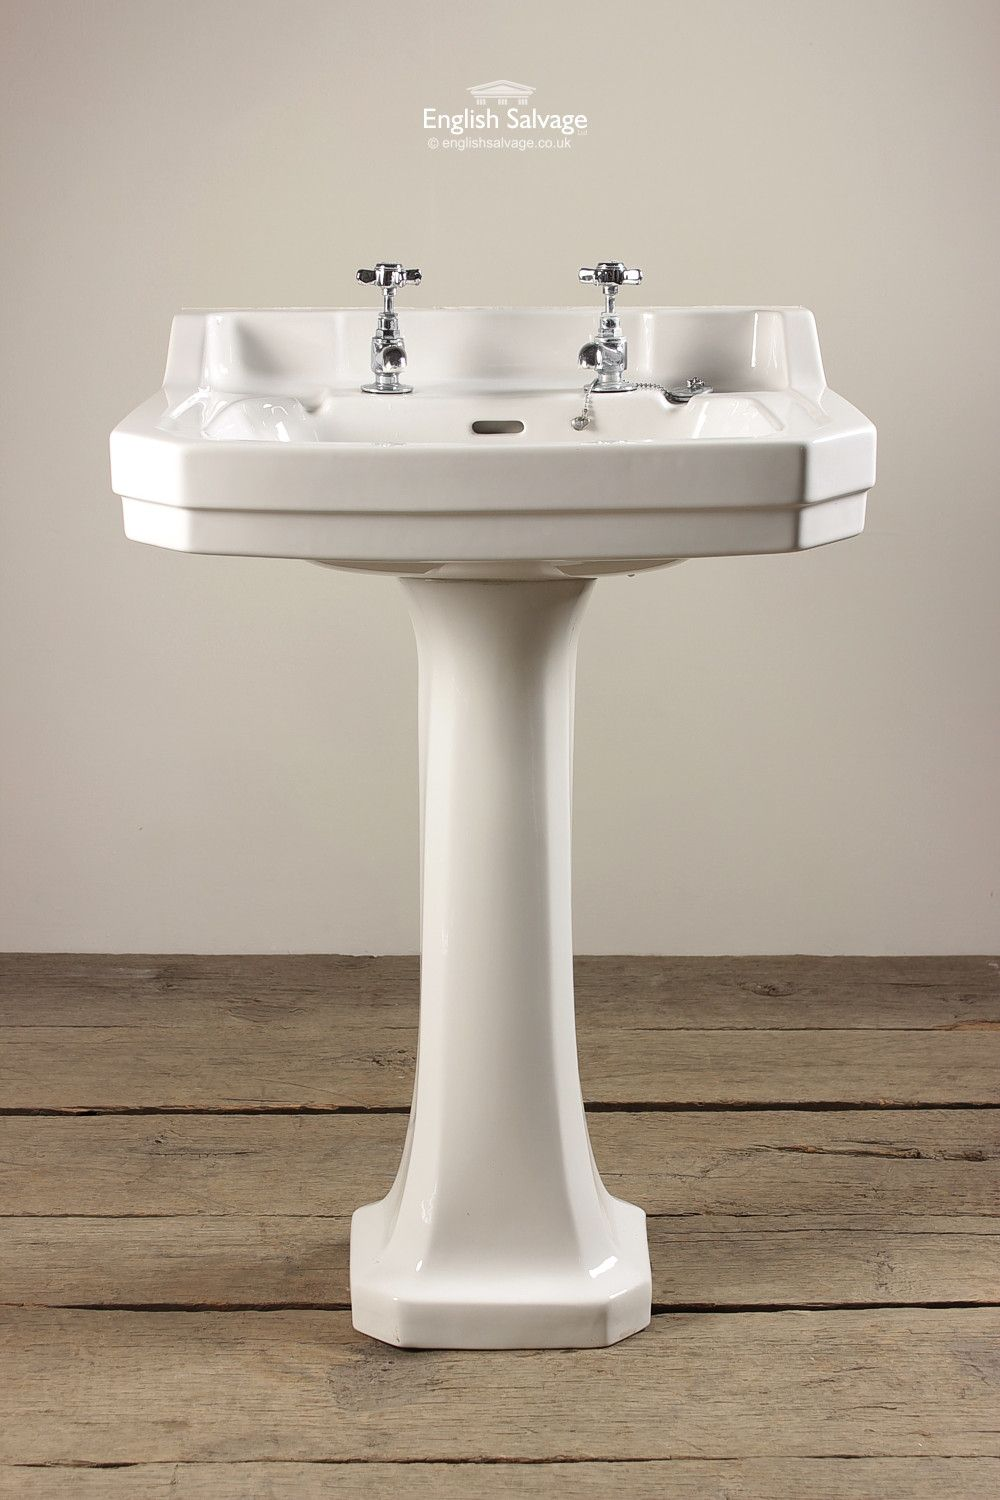 Shanks sink and stand reclaimed porcelain sinks and chrome stands - Adelphi Wash Basin And Pedestal